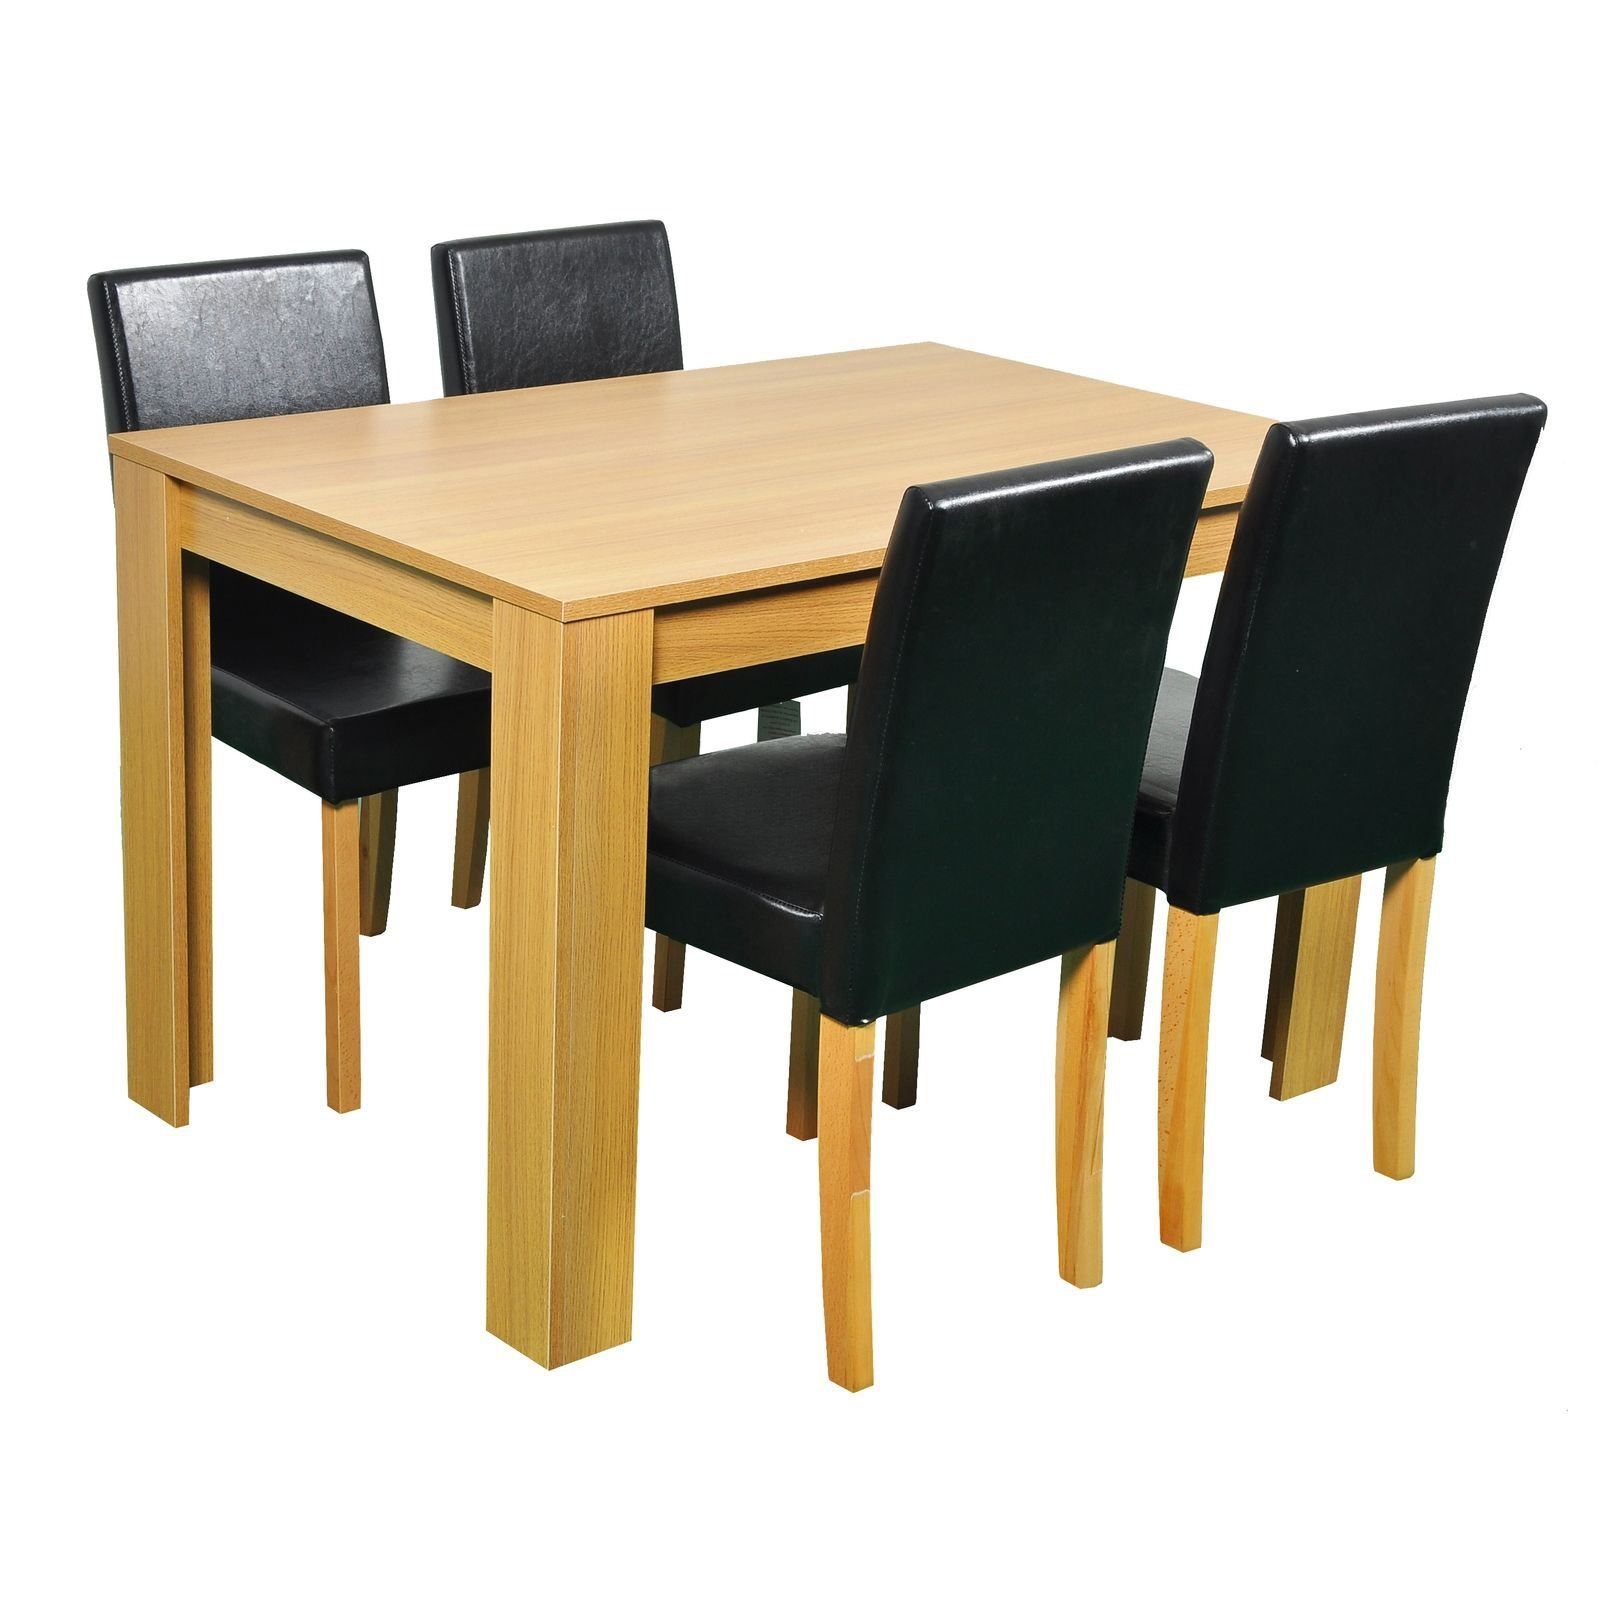 Surprising Oak Wooden Dining Table And 4 Pu Faux Leather Chairs Set Gamerscity Chair Design For Home Gamerscityorg